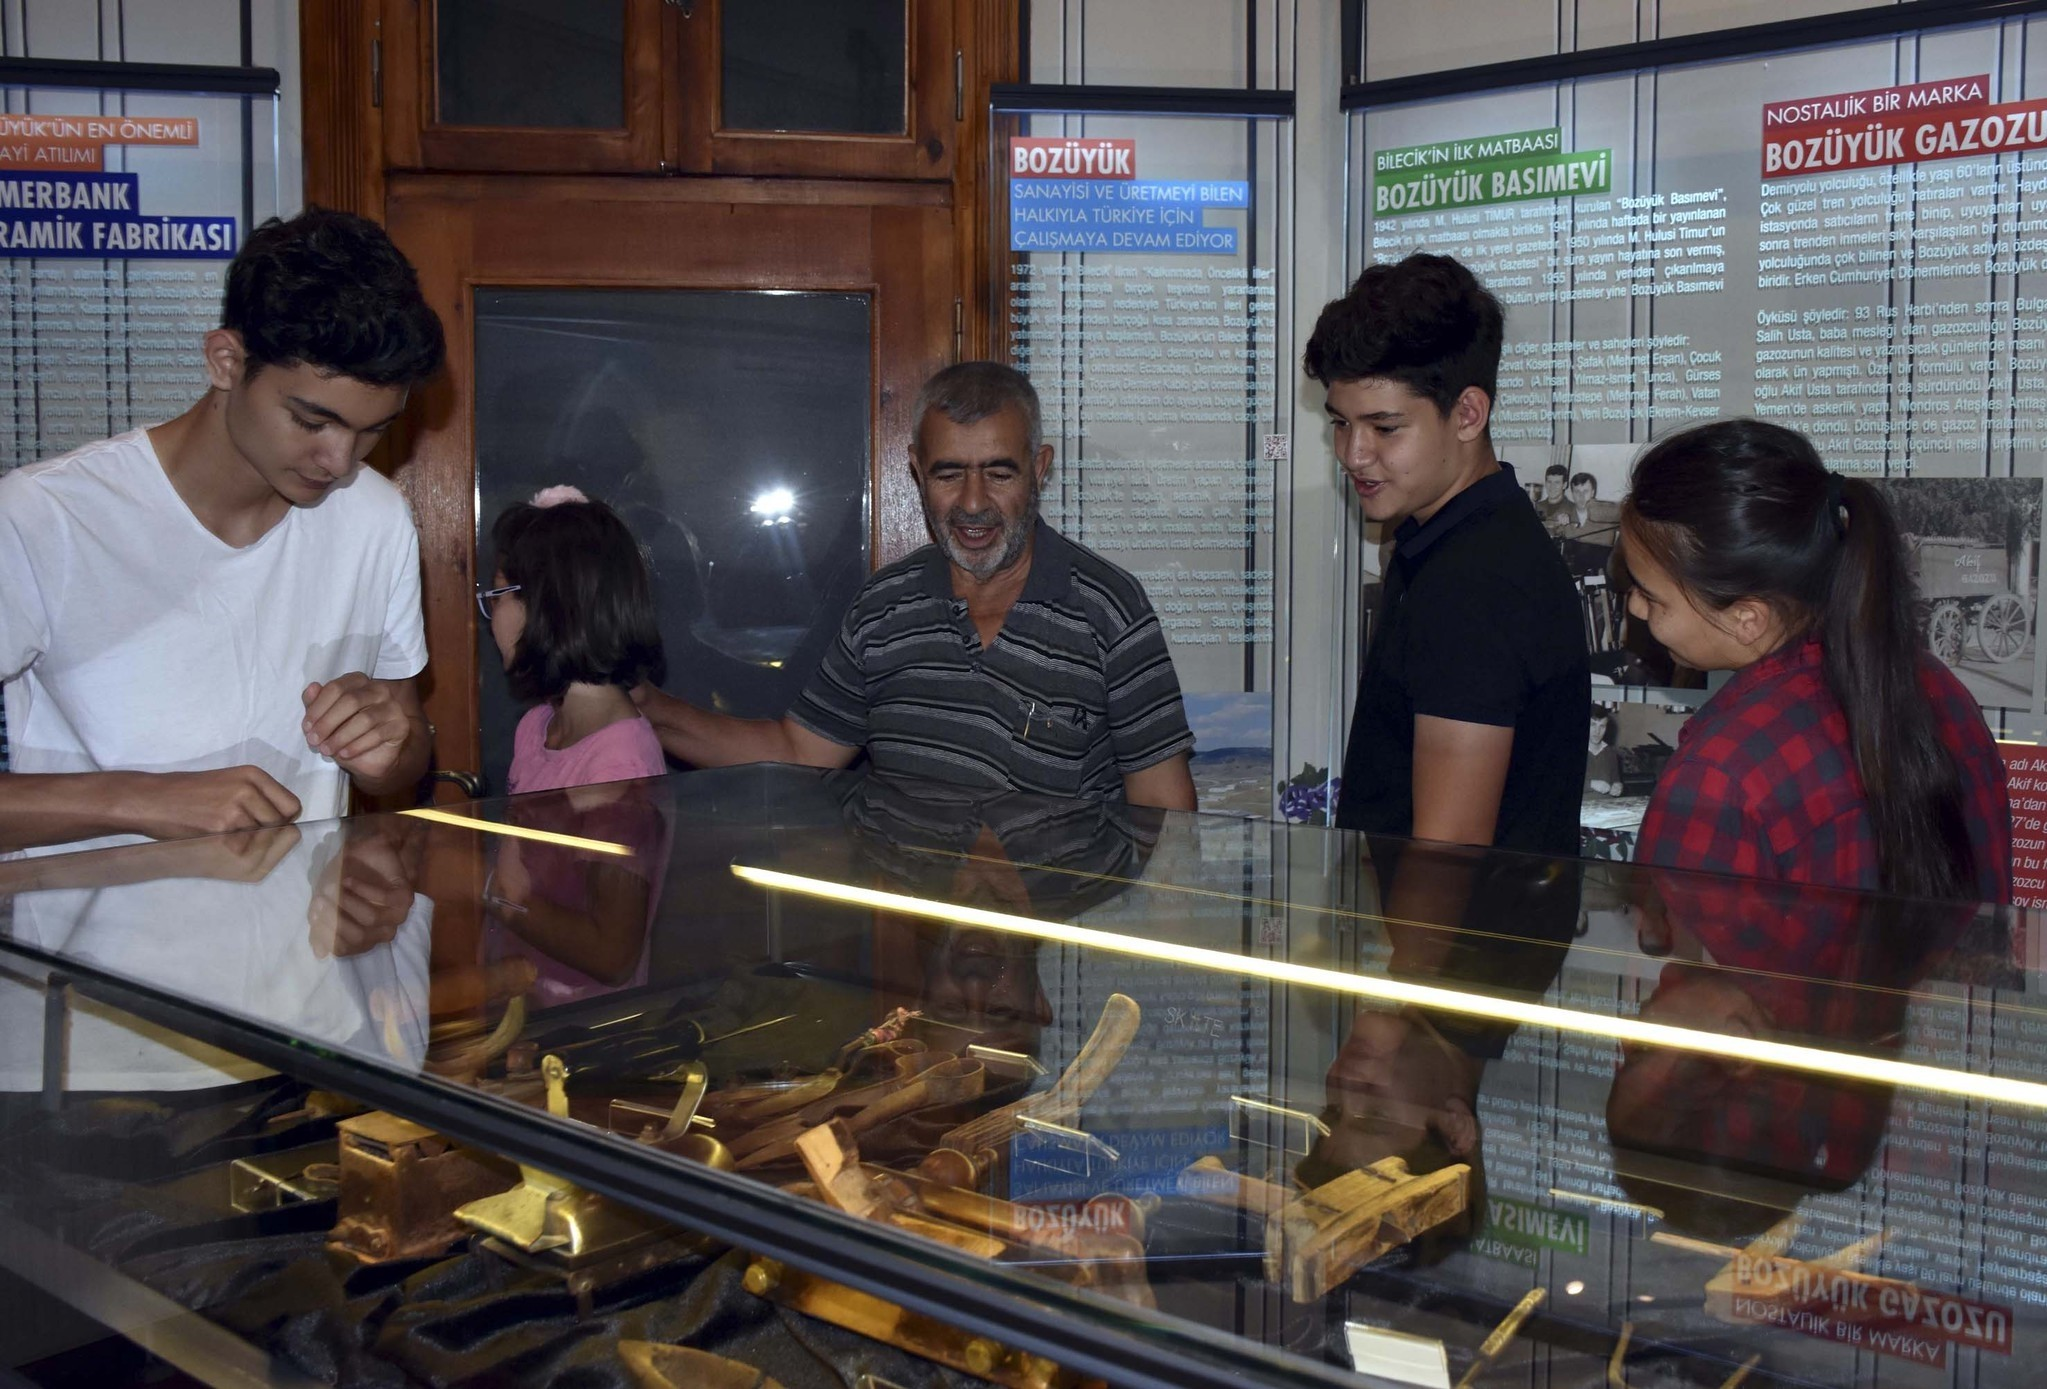 Visitors look at works at the Bozu00fcyu00fck City Museum.